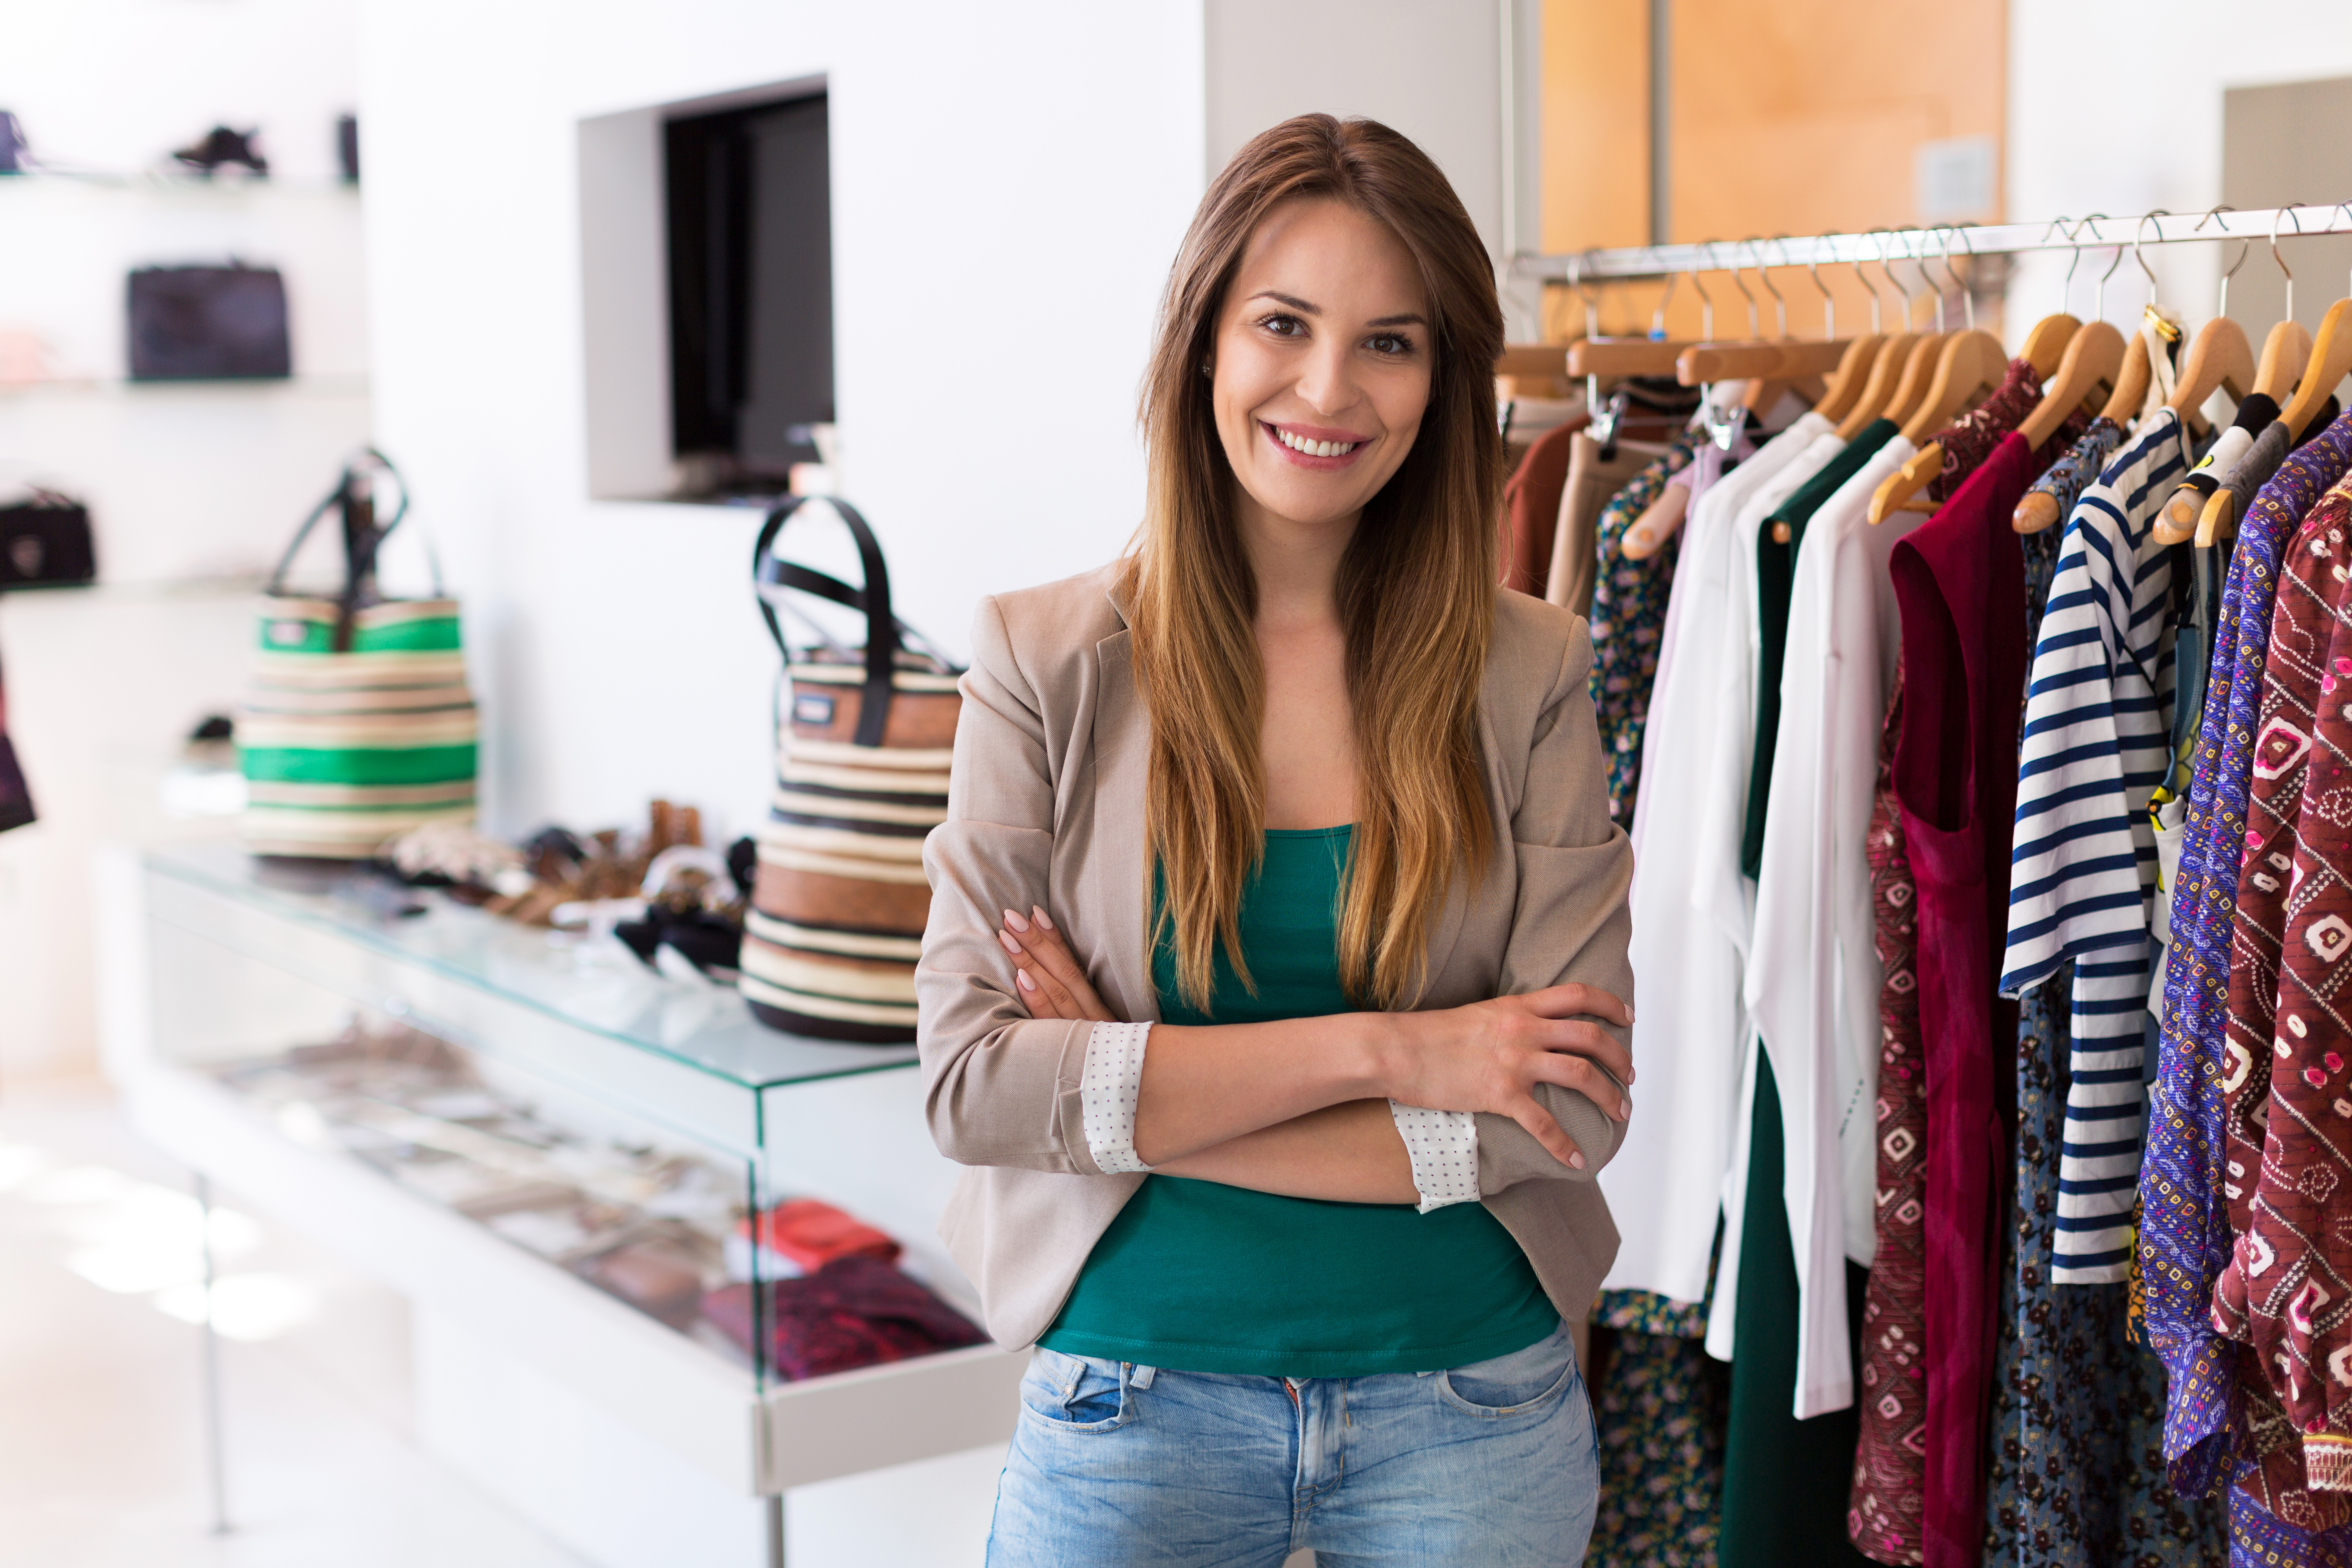 c799d7286 How to: start a successful clothing boutique